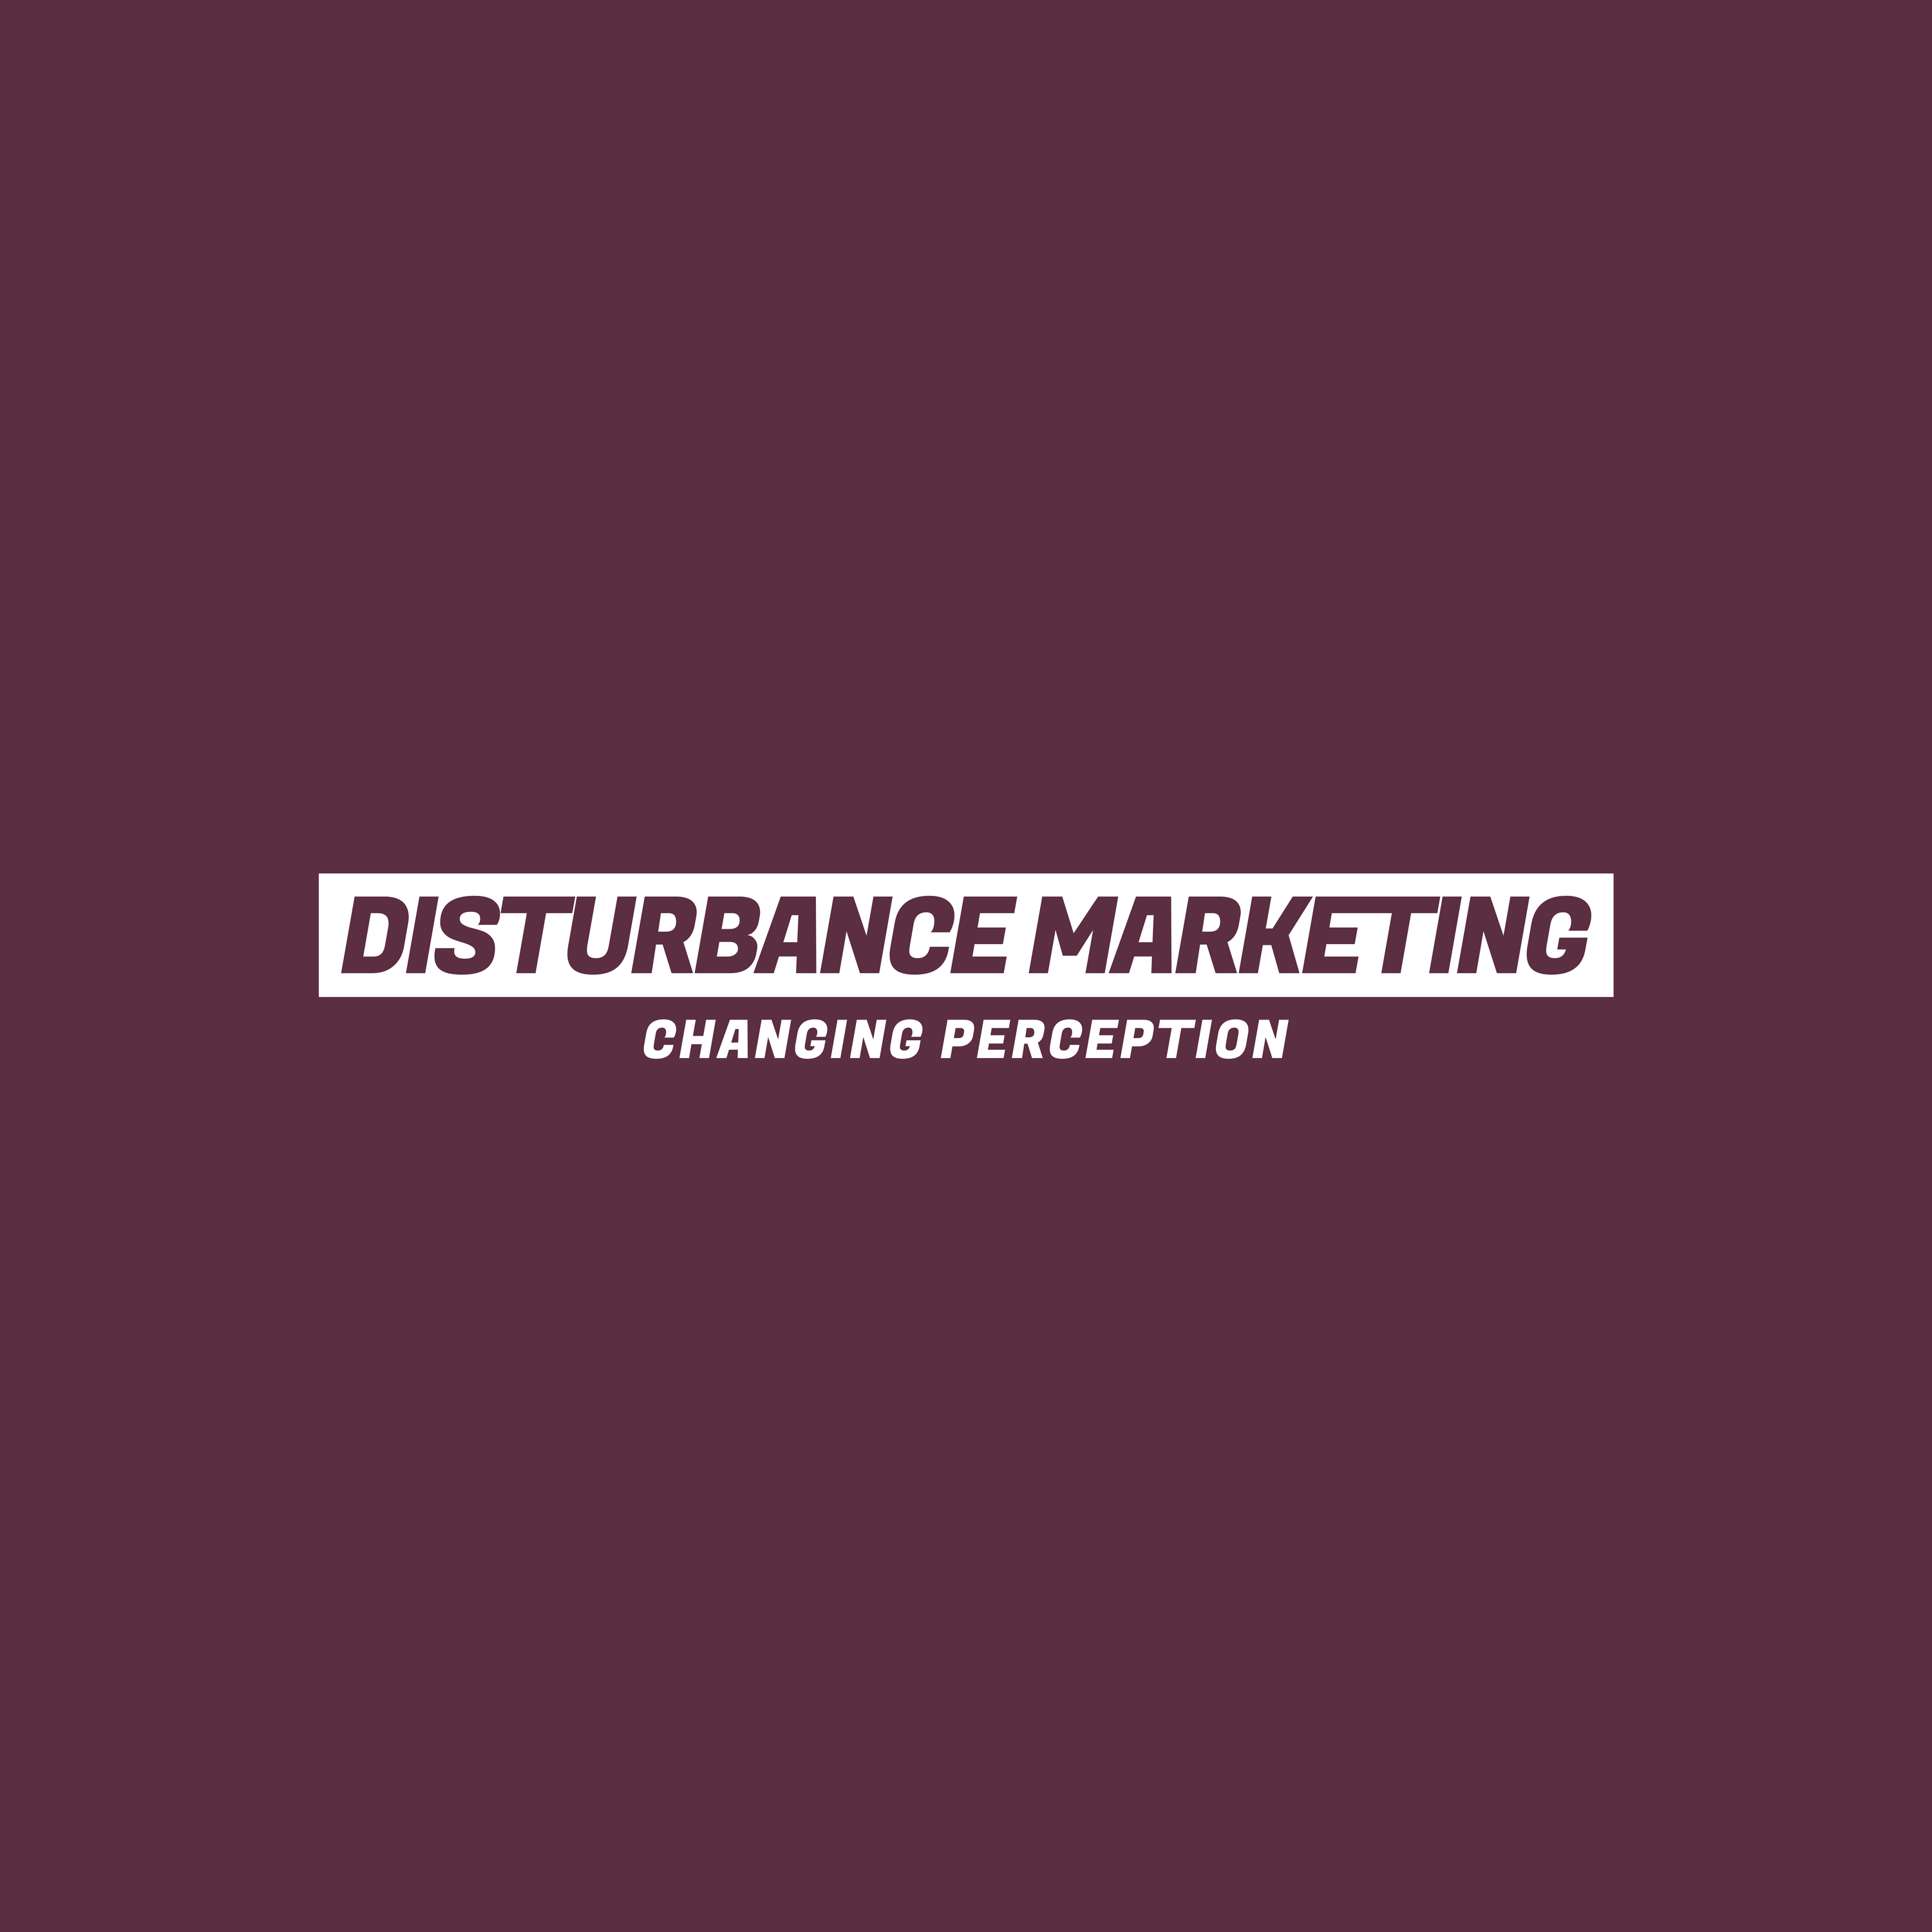 Disturbance Marketing